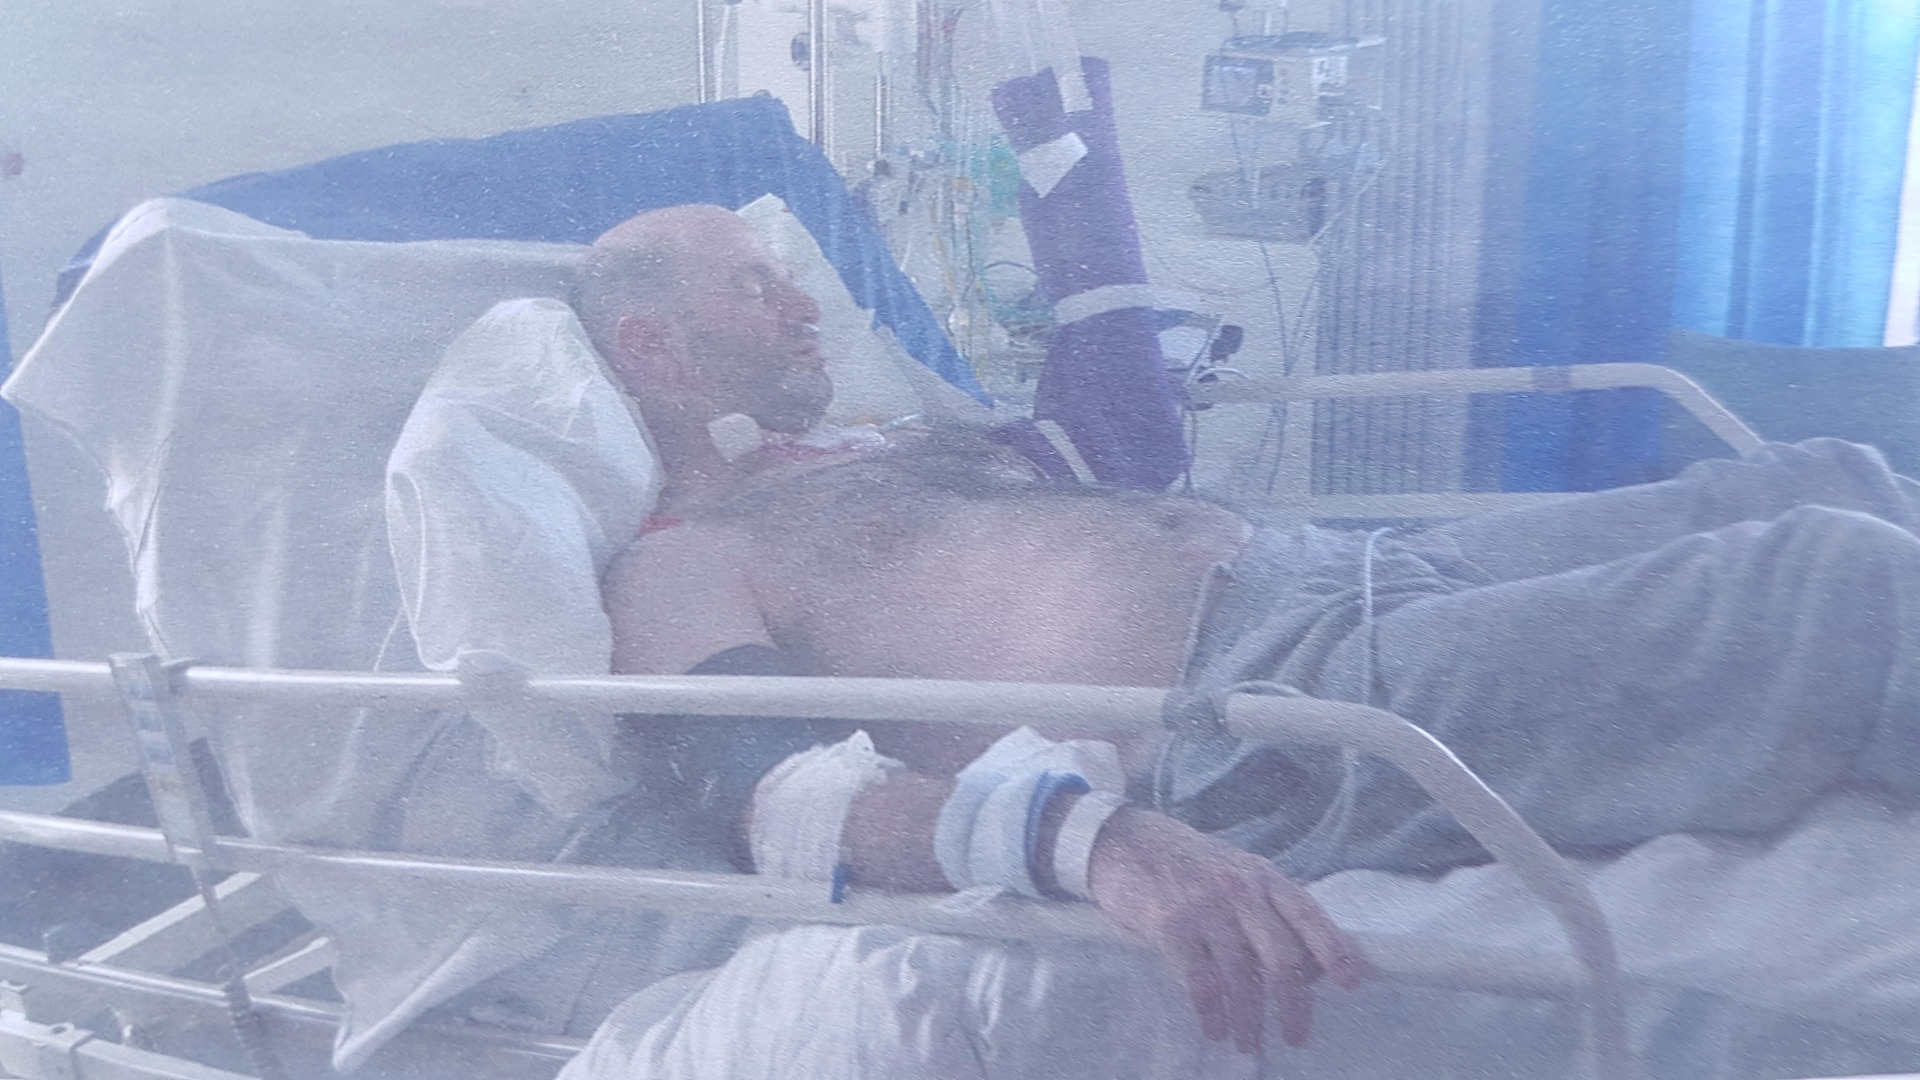 Marco in his hospital bed following the crash